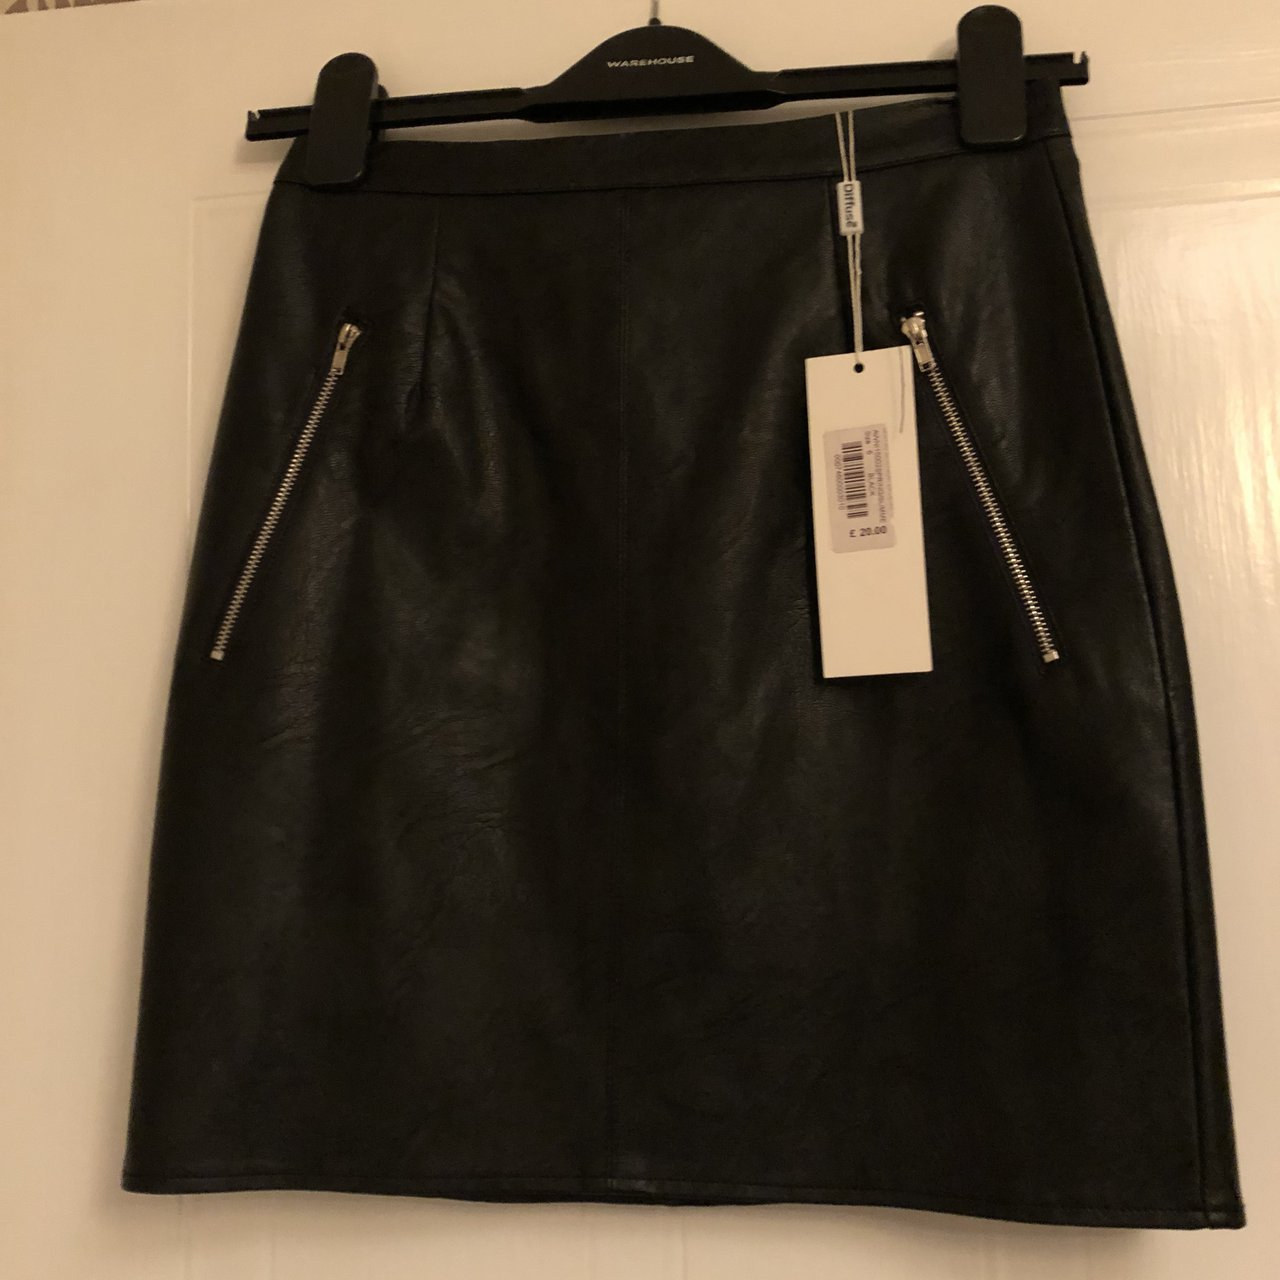 dd97eee872b89 Leather Look Skirt Sale - raveitsafe